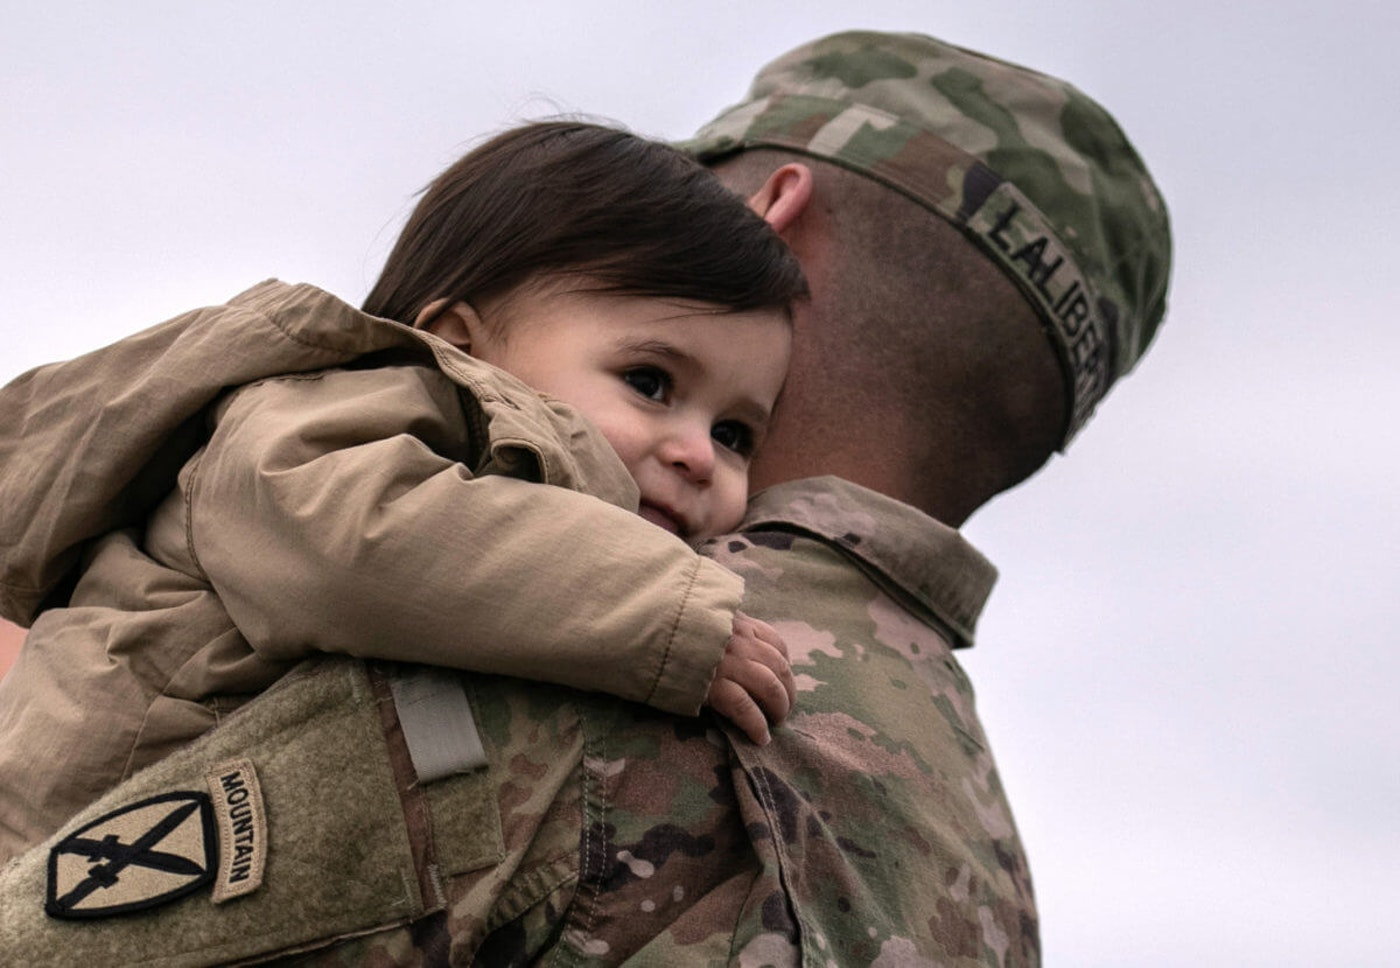 Despite their service to the country, the US military has not been spared the economic ravages of the pandemic and hunger has soared among military families, according to reports.